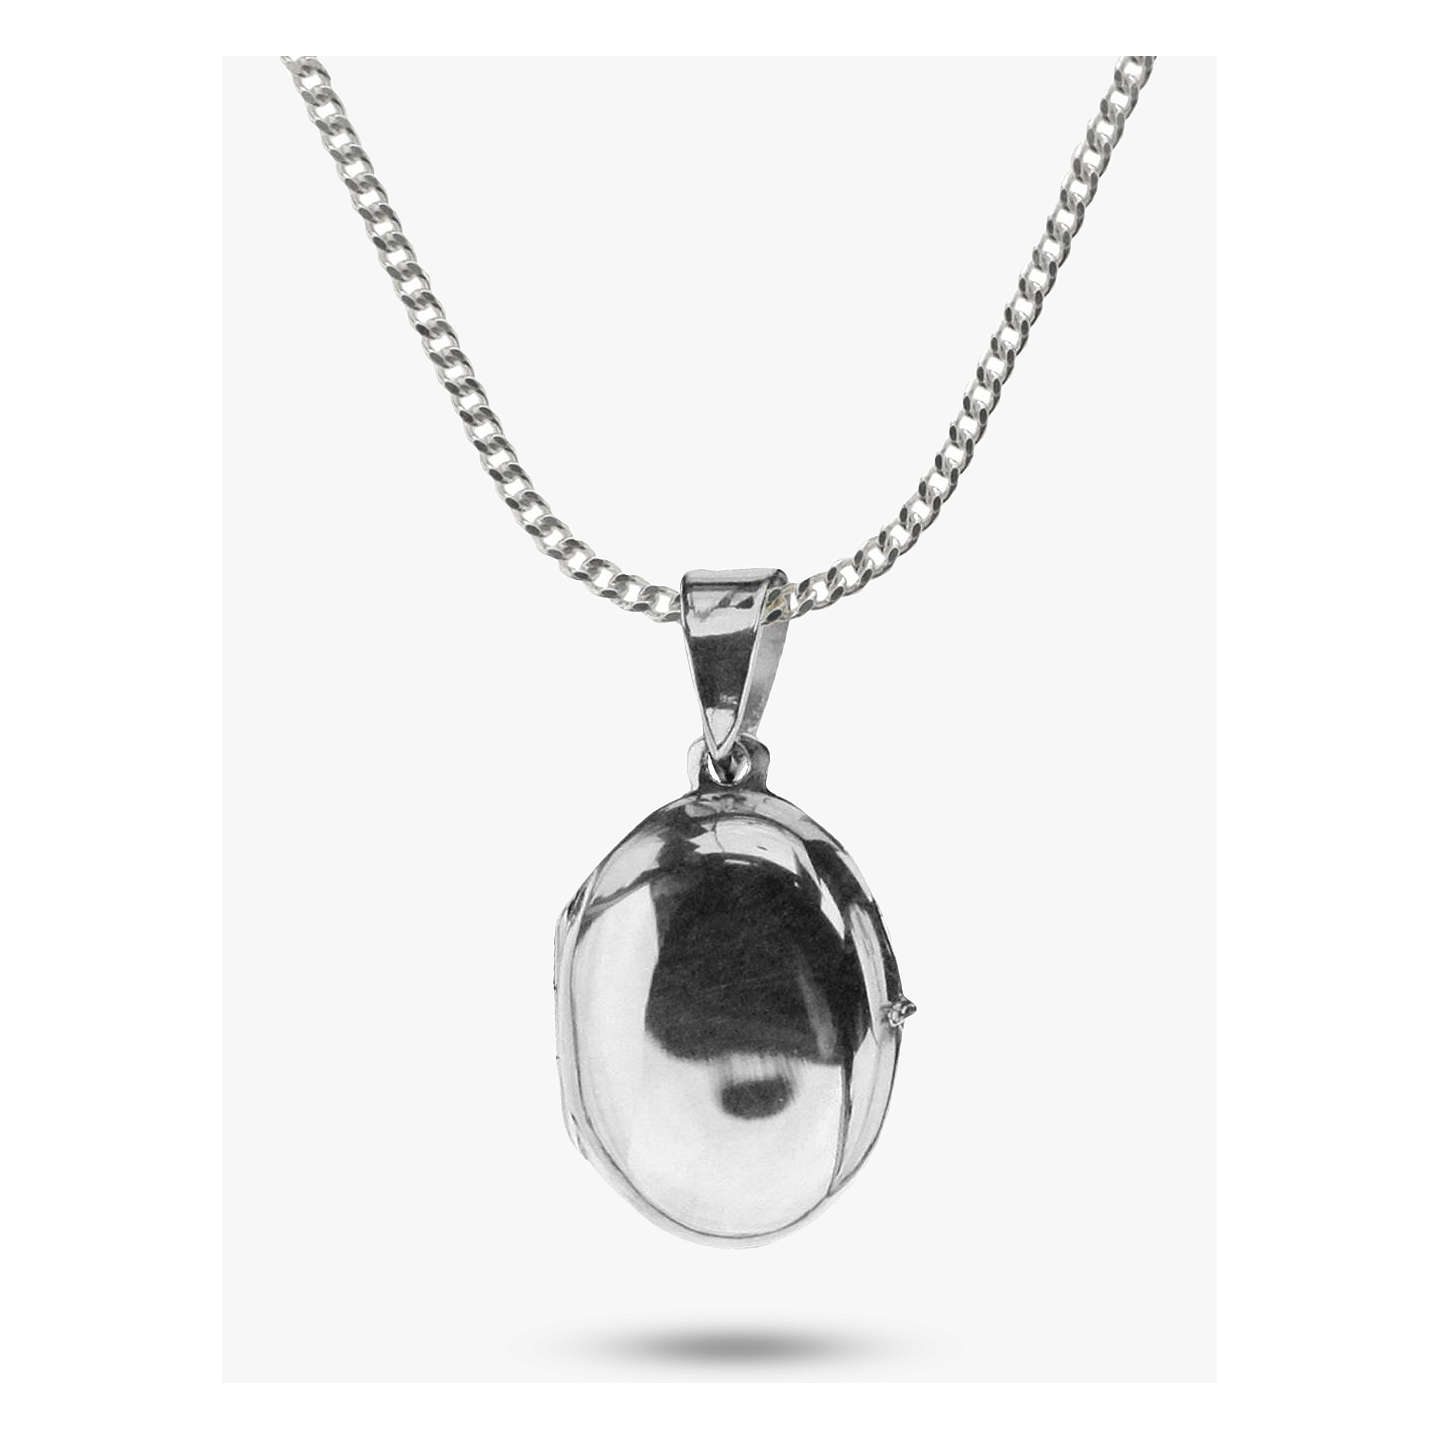 Nina b small sterling silver oval locket pendant necklace silver at buynina b small sterling silver oval locket pendant necklace silver online at johnlewis aloadofball